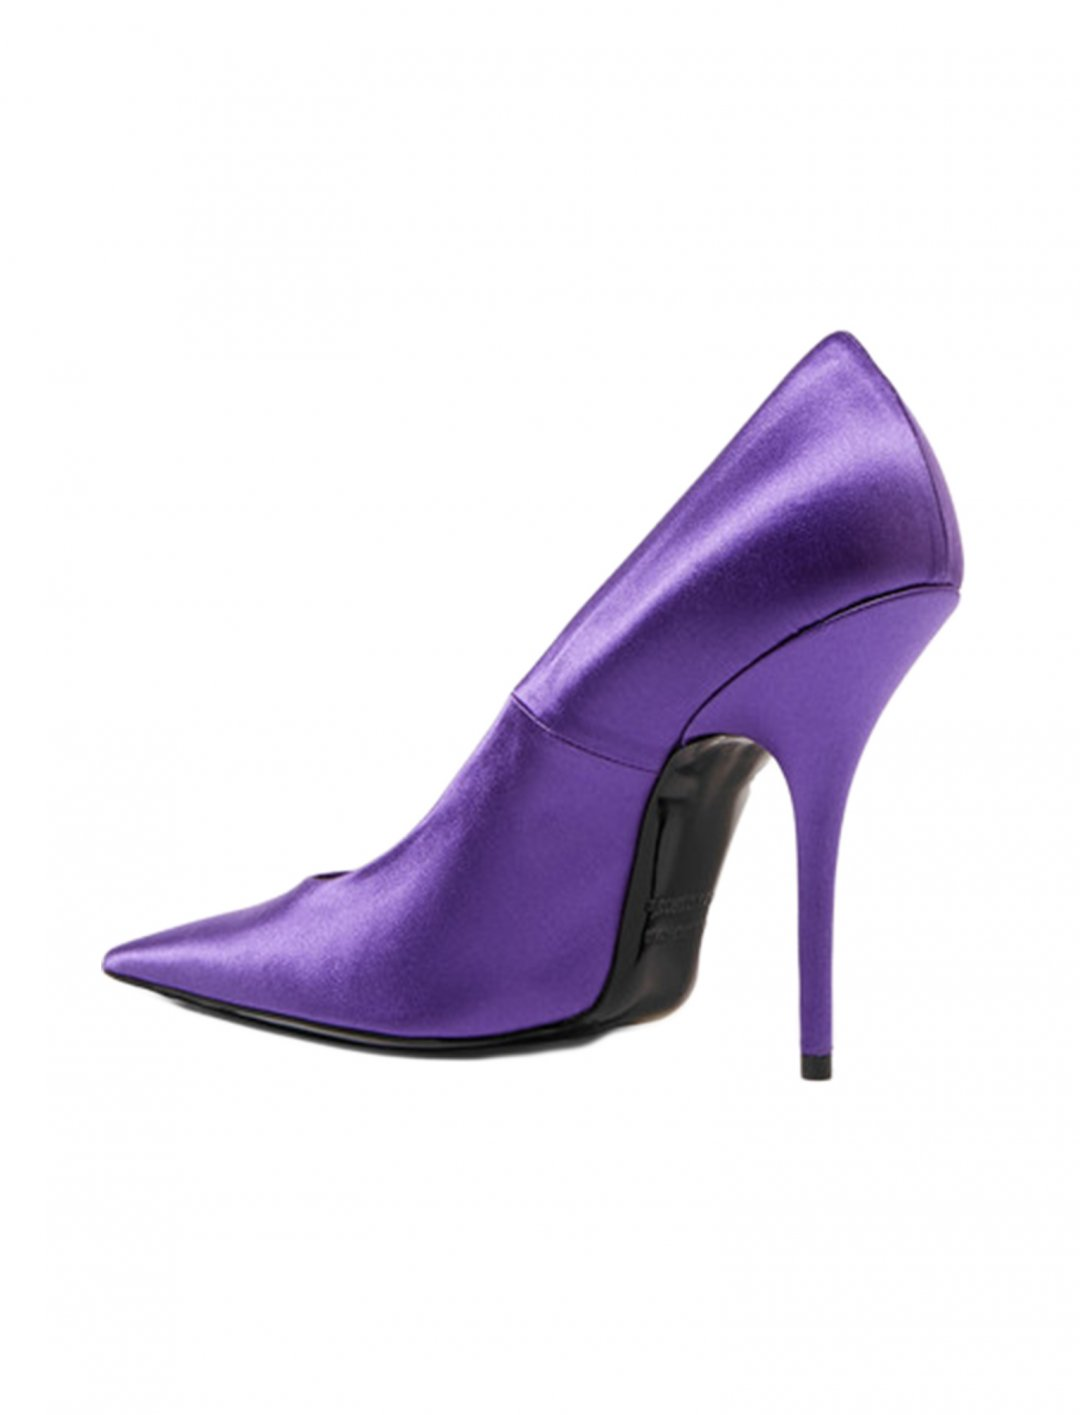 "Alicia Keys' Satin Pumps {""id"":12,""product_section_id"":1,""name"":""Shoes"",""order"":12} Balenciaga"